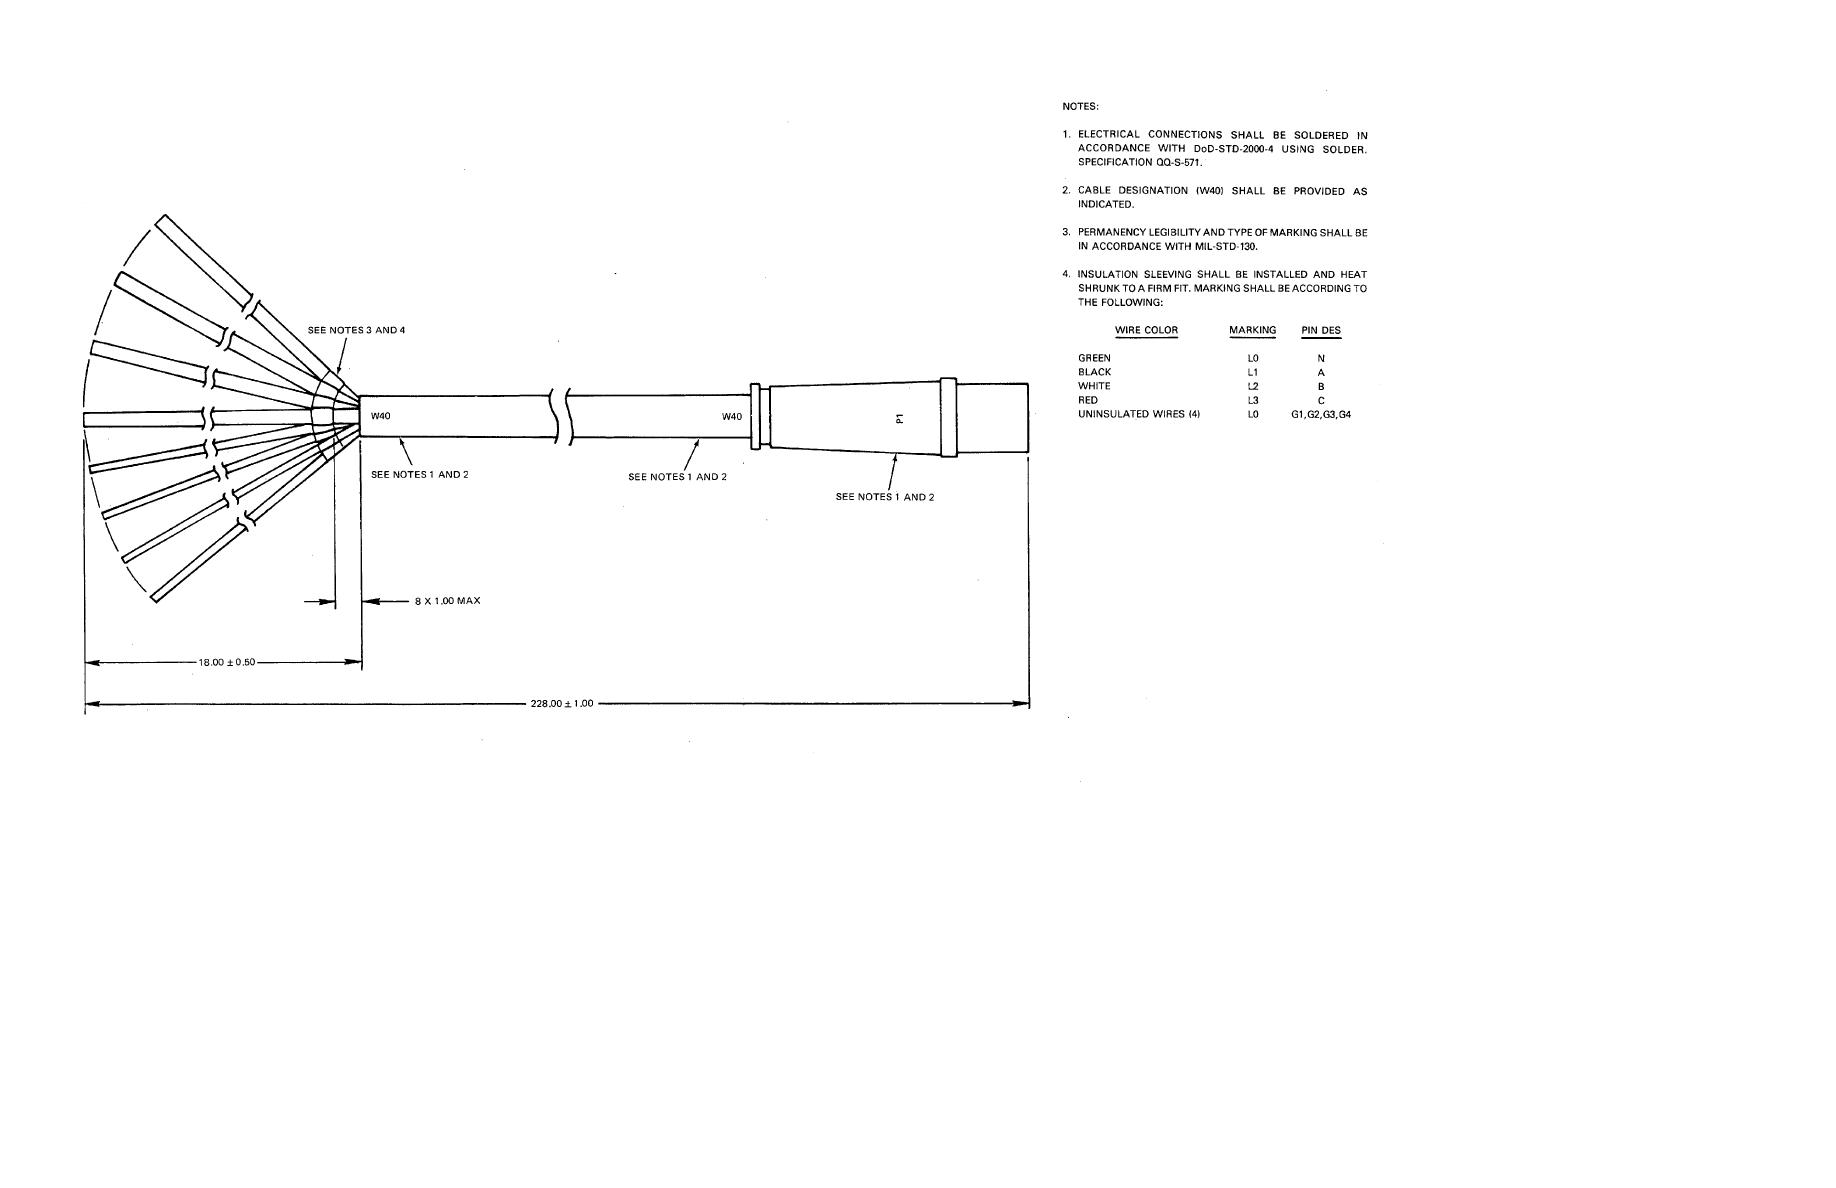 hight resolution of wiring diagram rowpu power cable w40